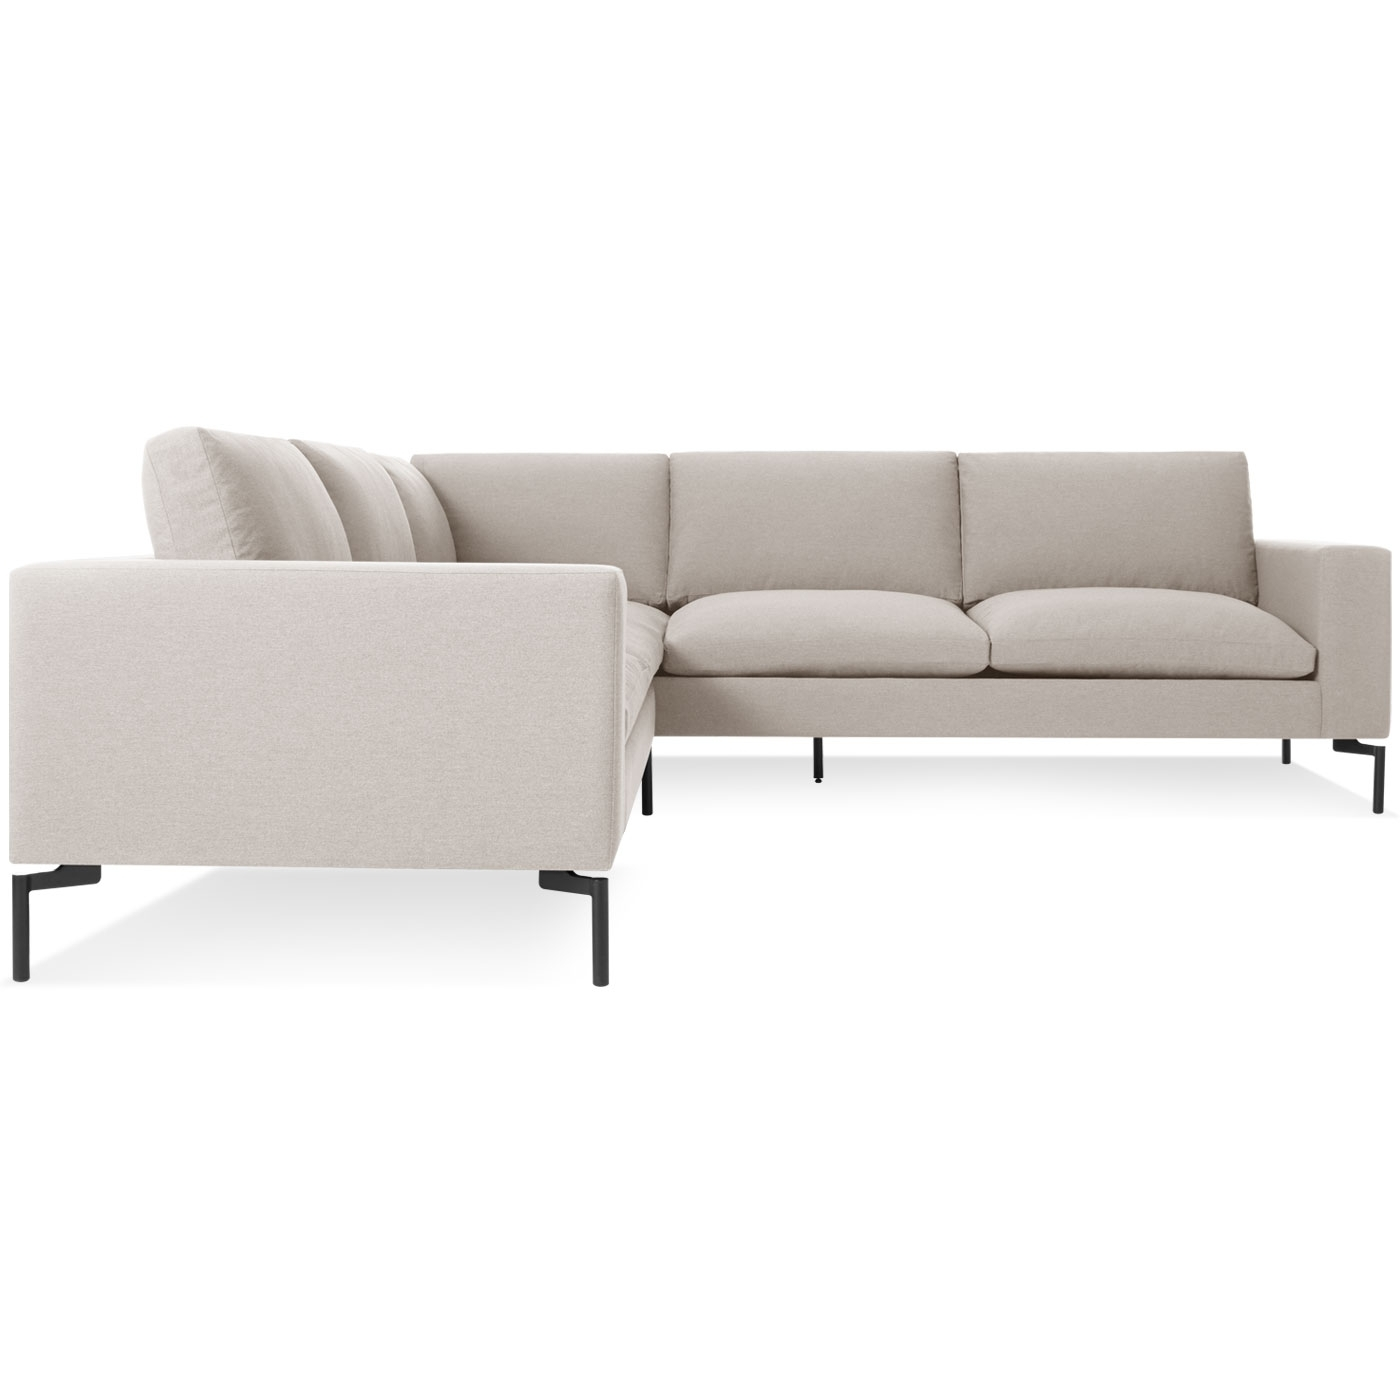 New Standard Small Sectional Sofa – Modern Sofas (View 8 of 15)